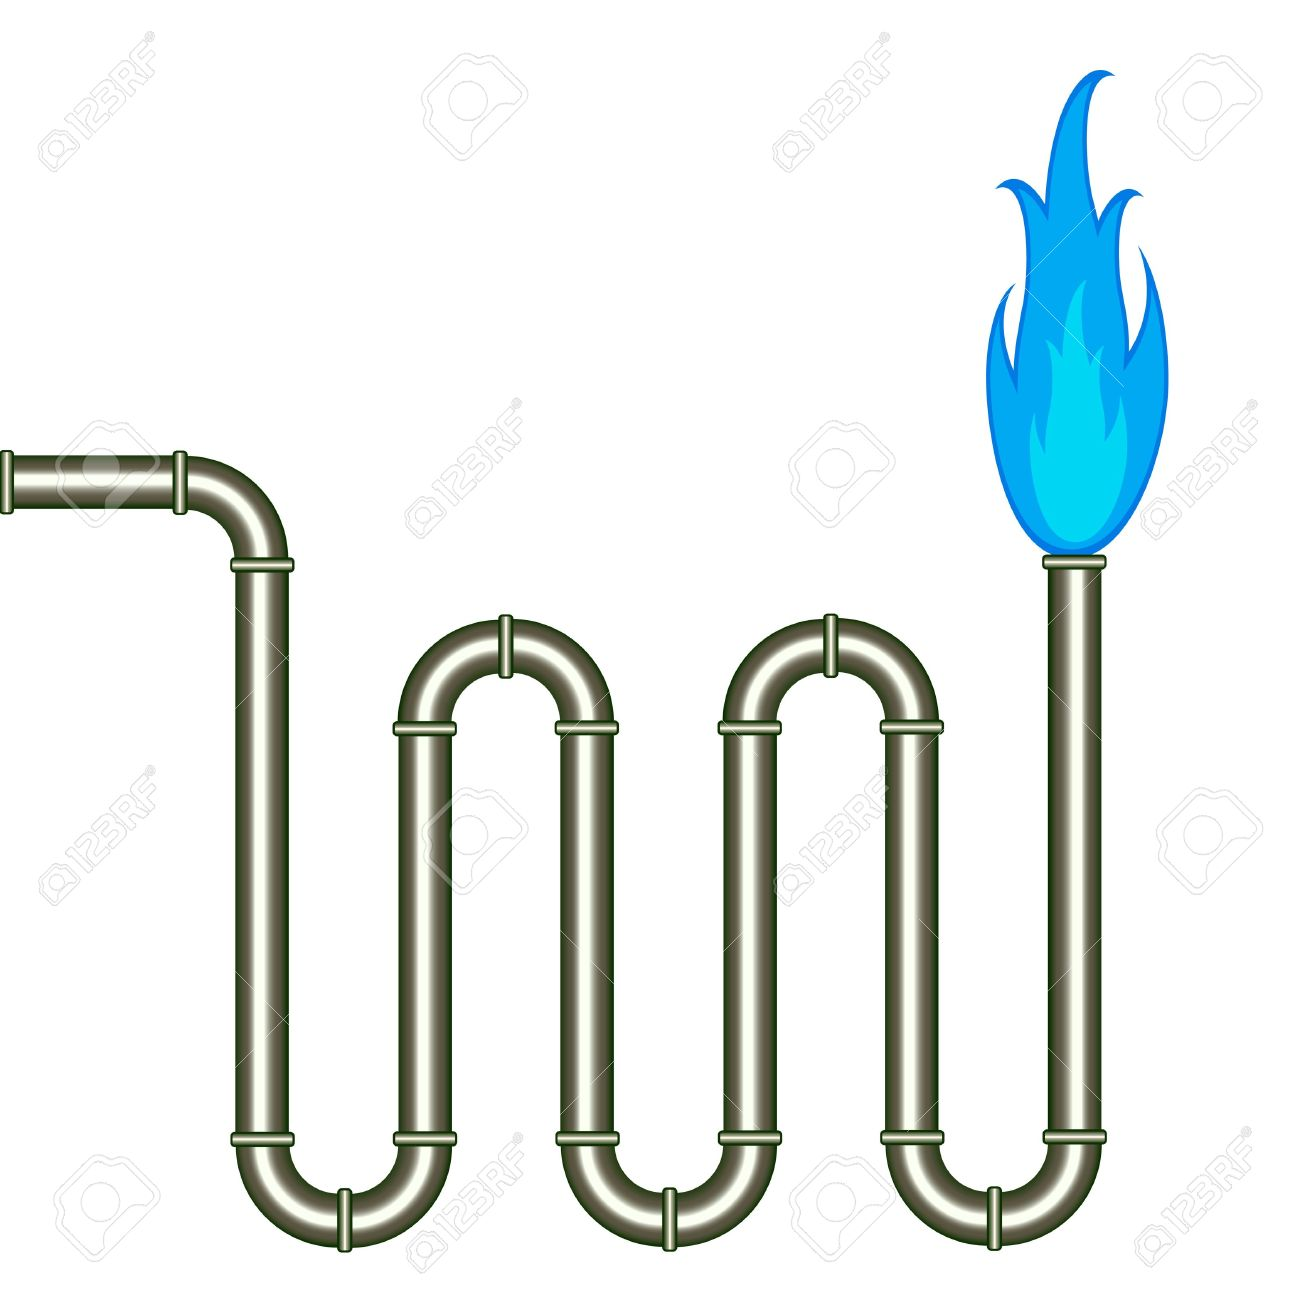 Gas pipe clipart